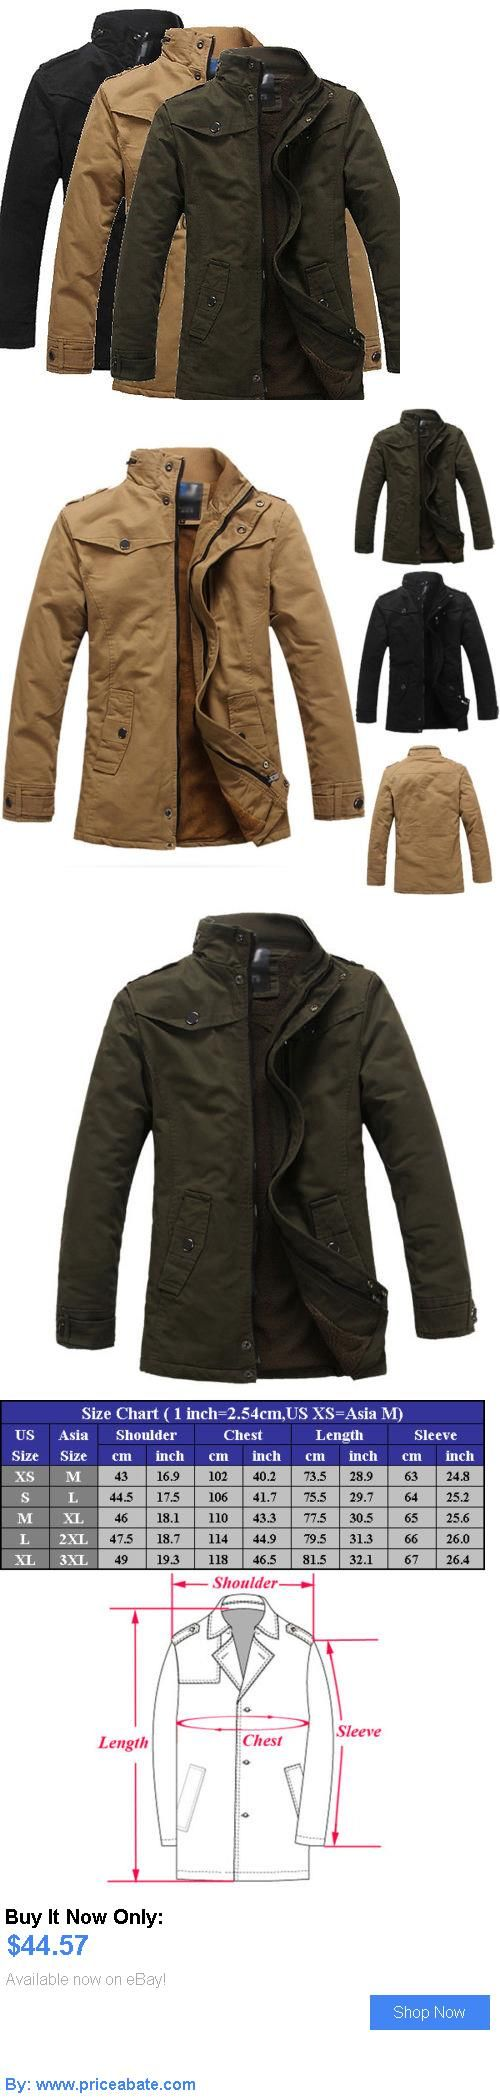 Men Coats And Jackets: Mens New Winter Casual Jacket Thick Coat Warm Collar Outerwear Overcoat Parka BUY IT NOW ONLY: $44.57 #priceabateMenCoatsAndJackets OR #priceabate